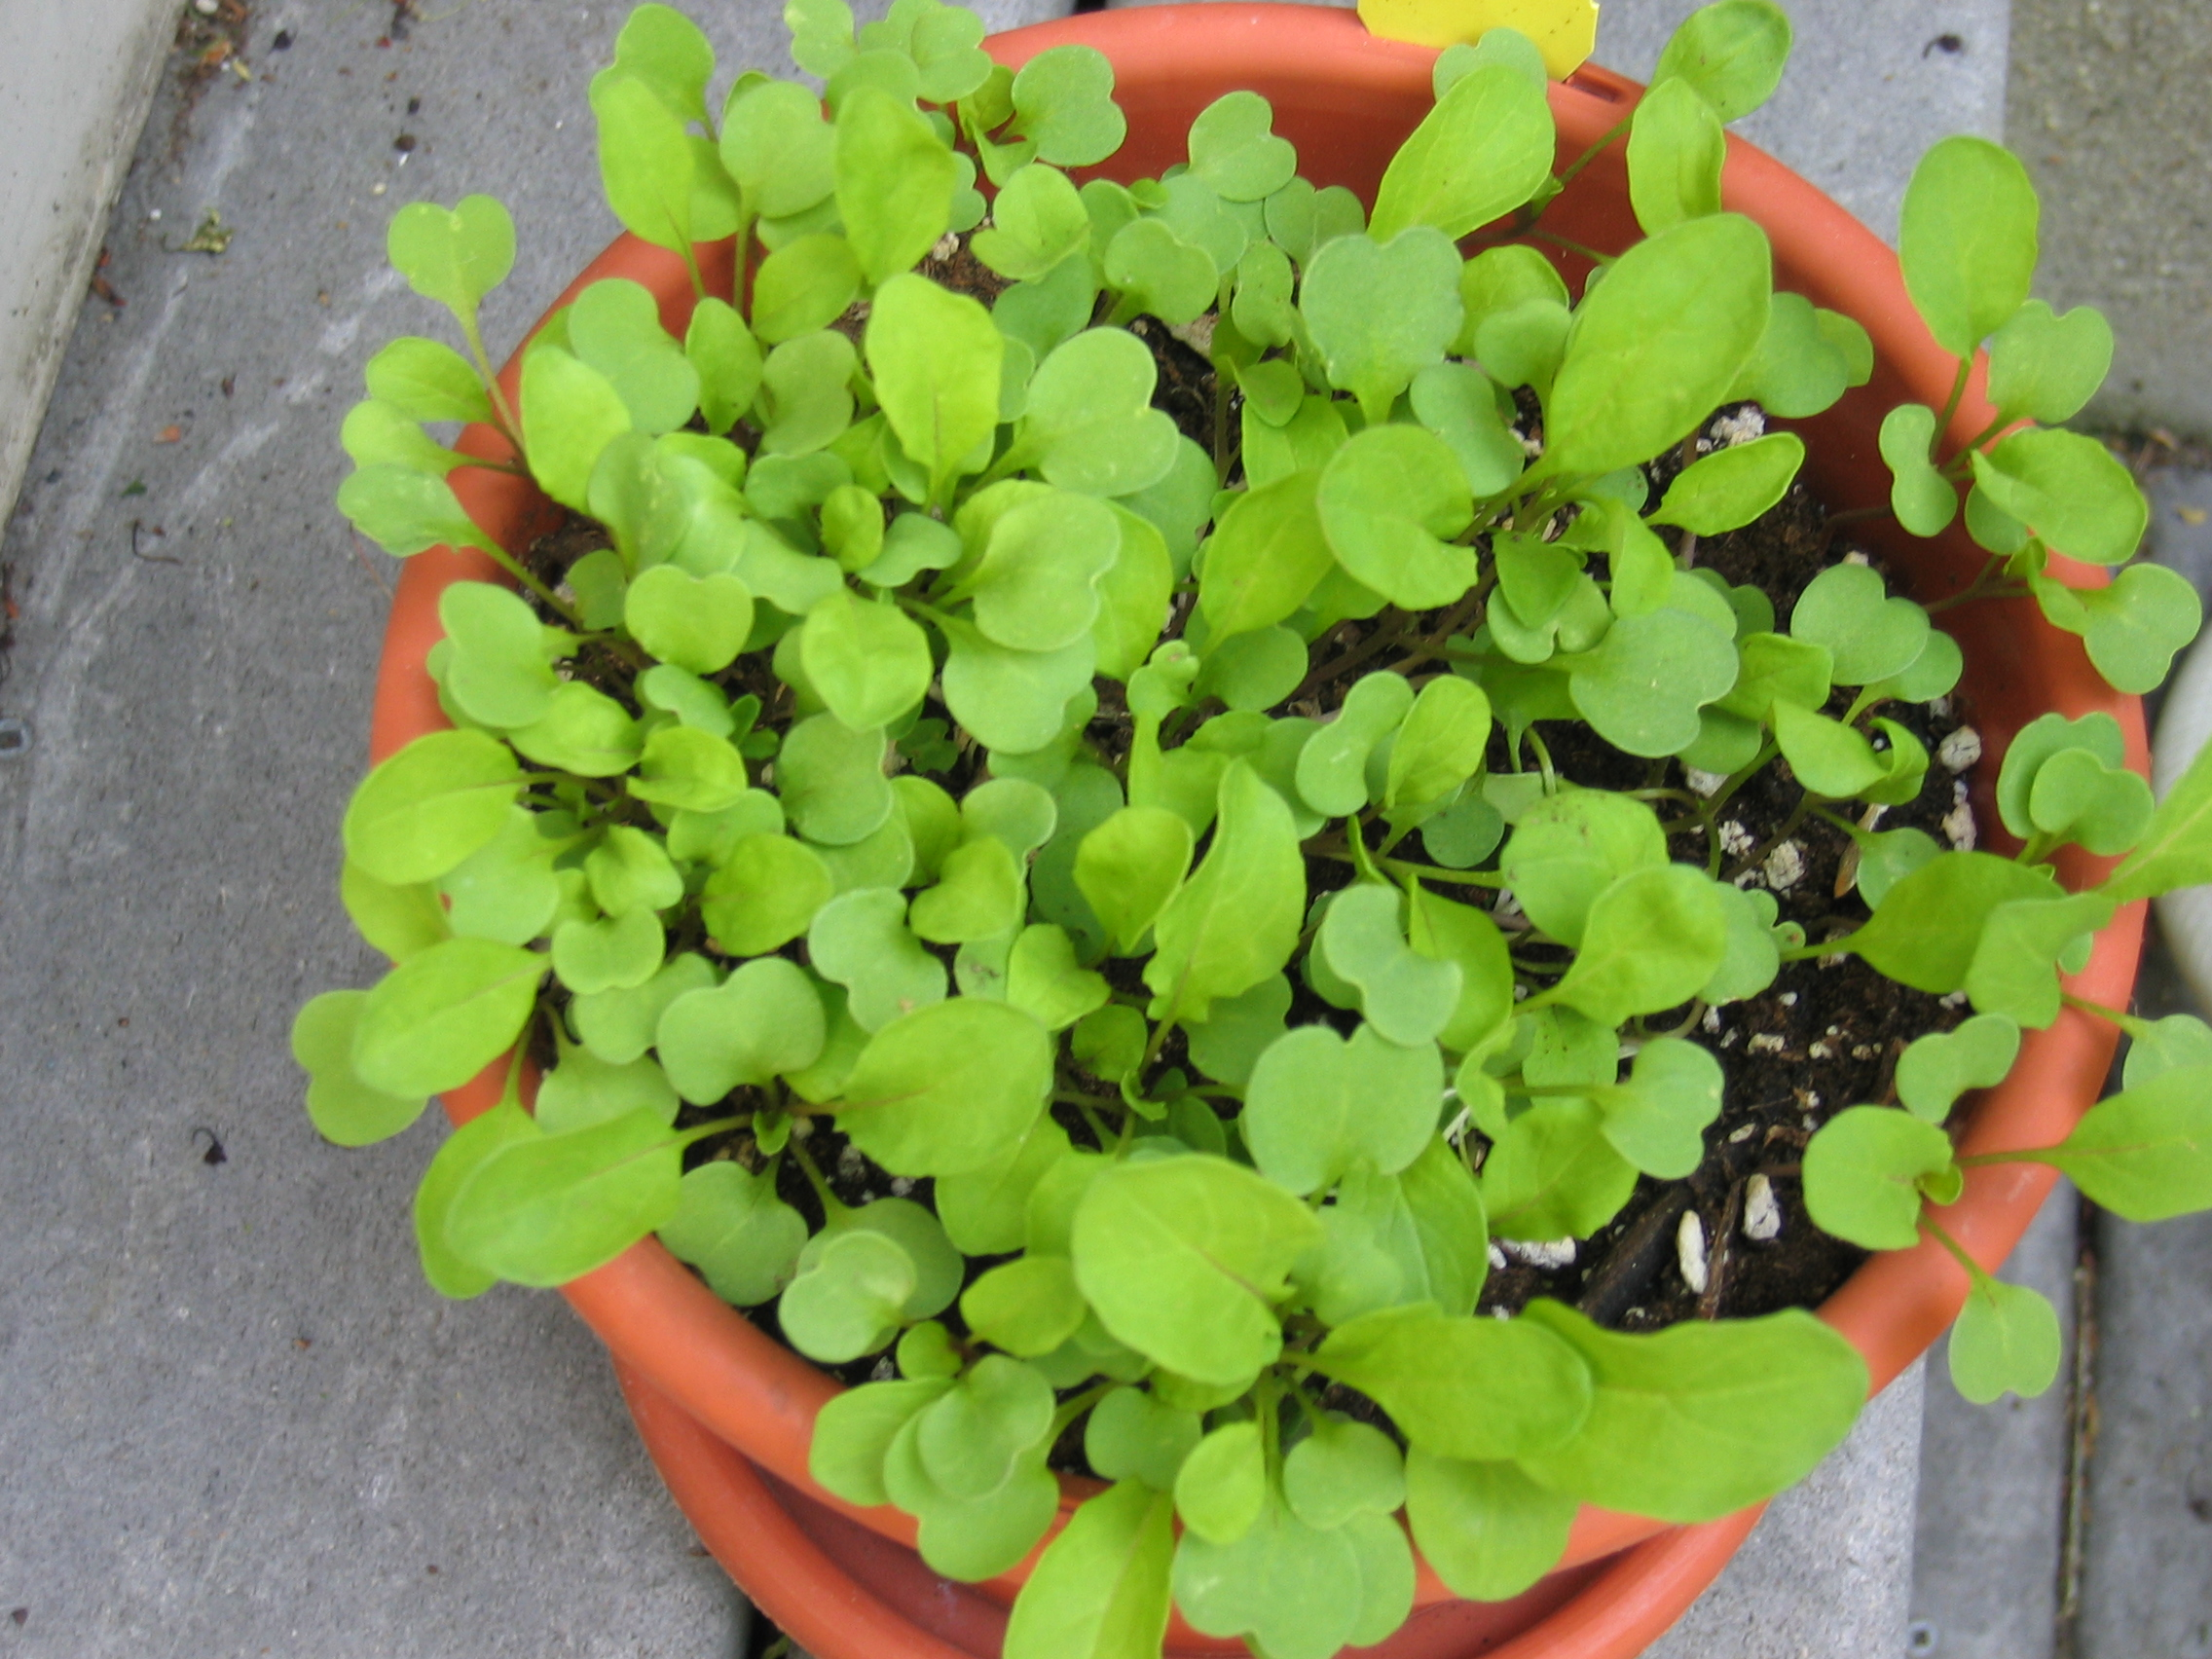 Greens like arugula are very easy to grow in containers. (Dave Epstein)